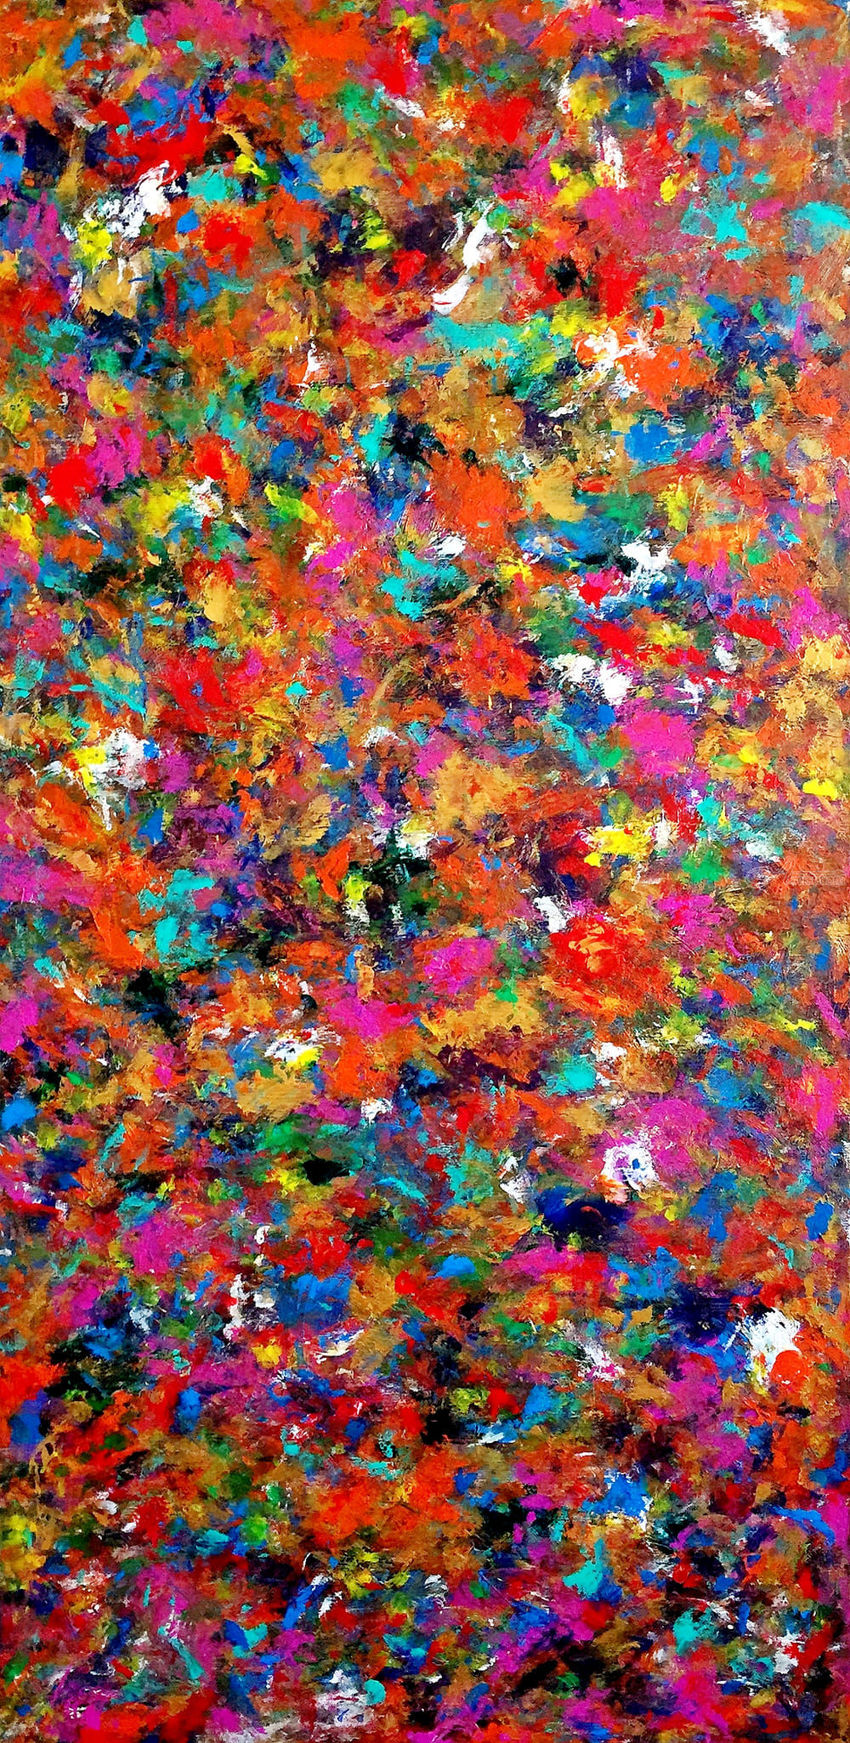 CARNIVAL, Paintings, Abstract, Expressionism, Fine Art, Modernism, Decorative, Fantasy, Inspirational, Acrylic, By Tanya Hansen